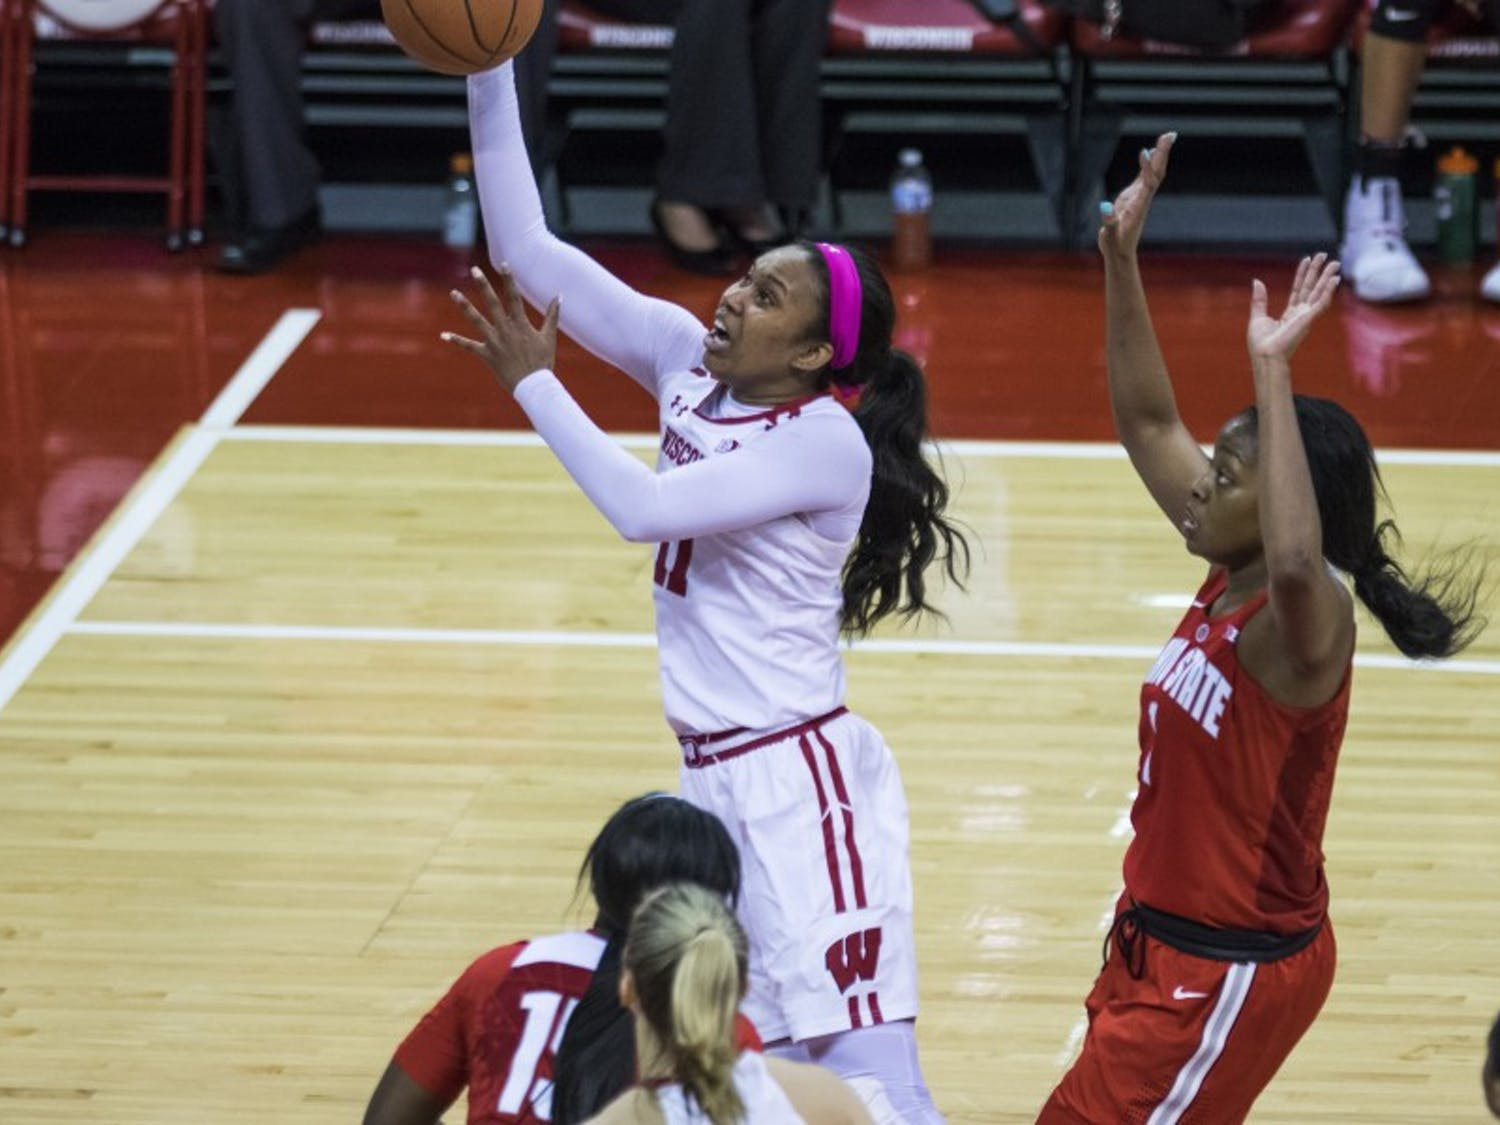 Senior forward Marsha Howard had 16 points while Imani Lewis put up 18 in Wisconsin's loss to Rutgers Monday night.